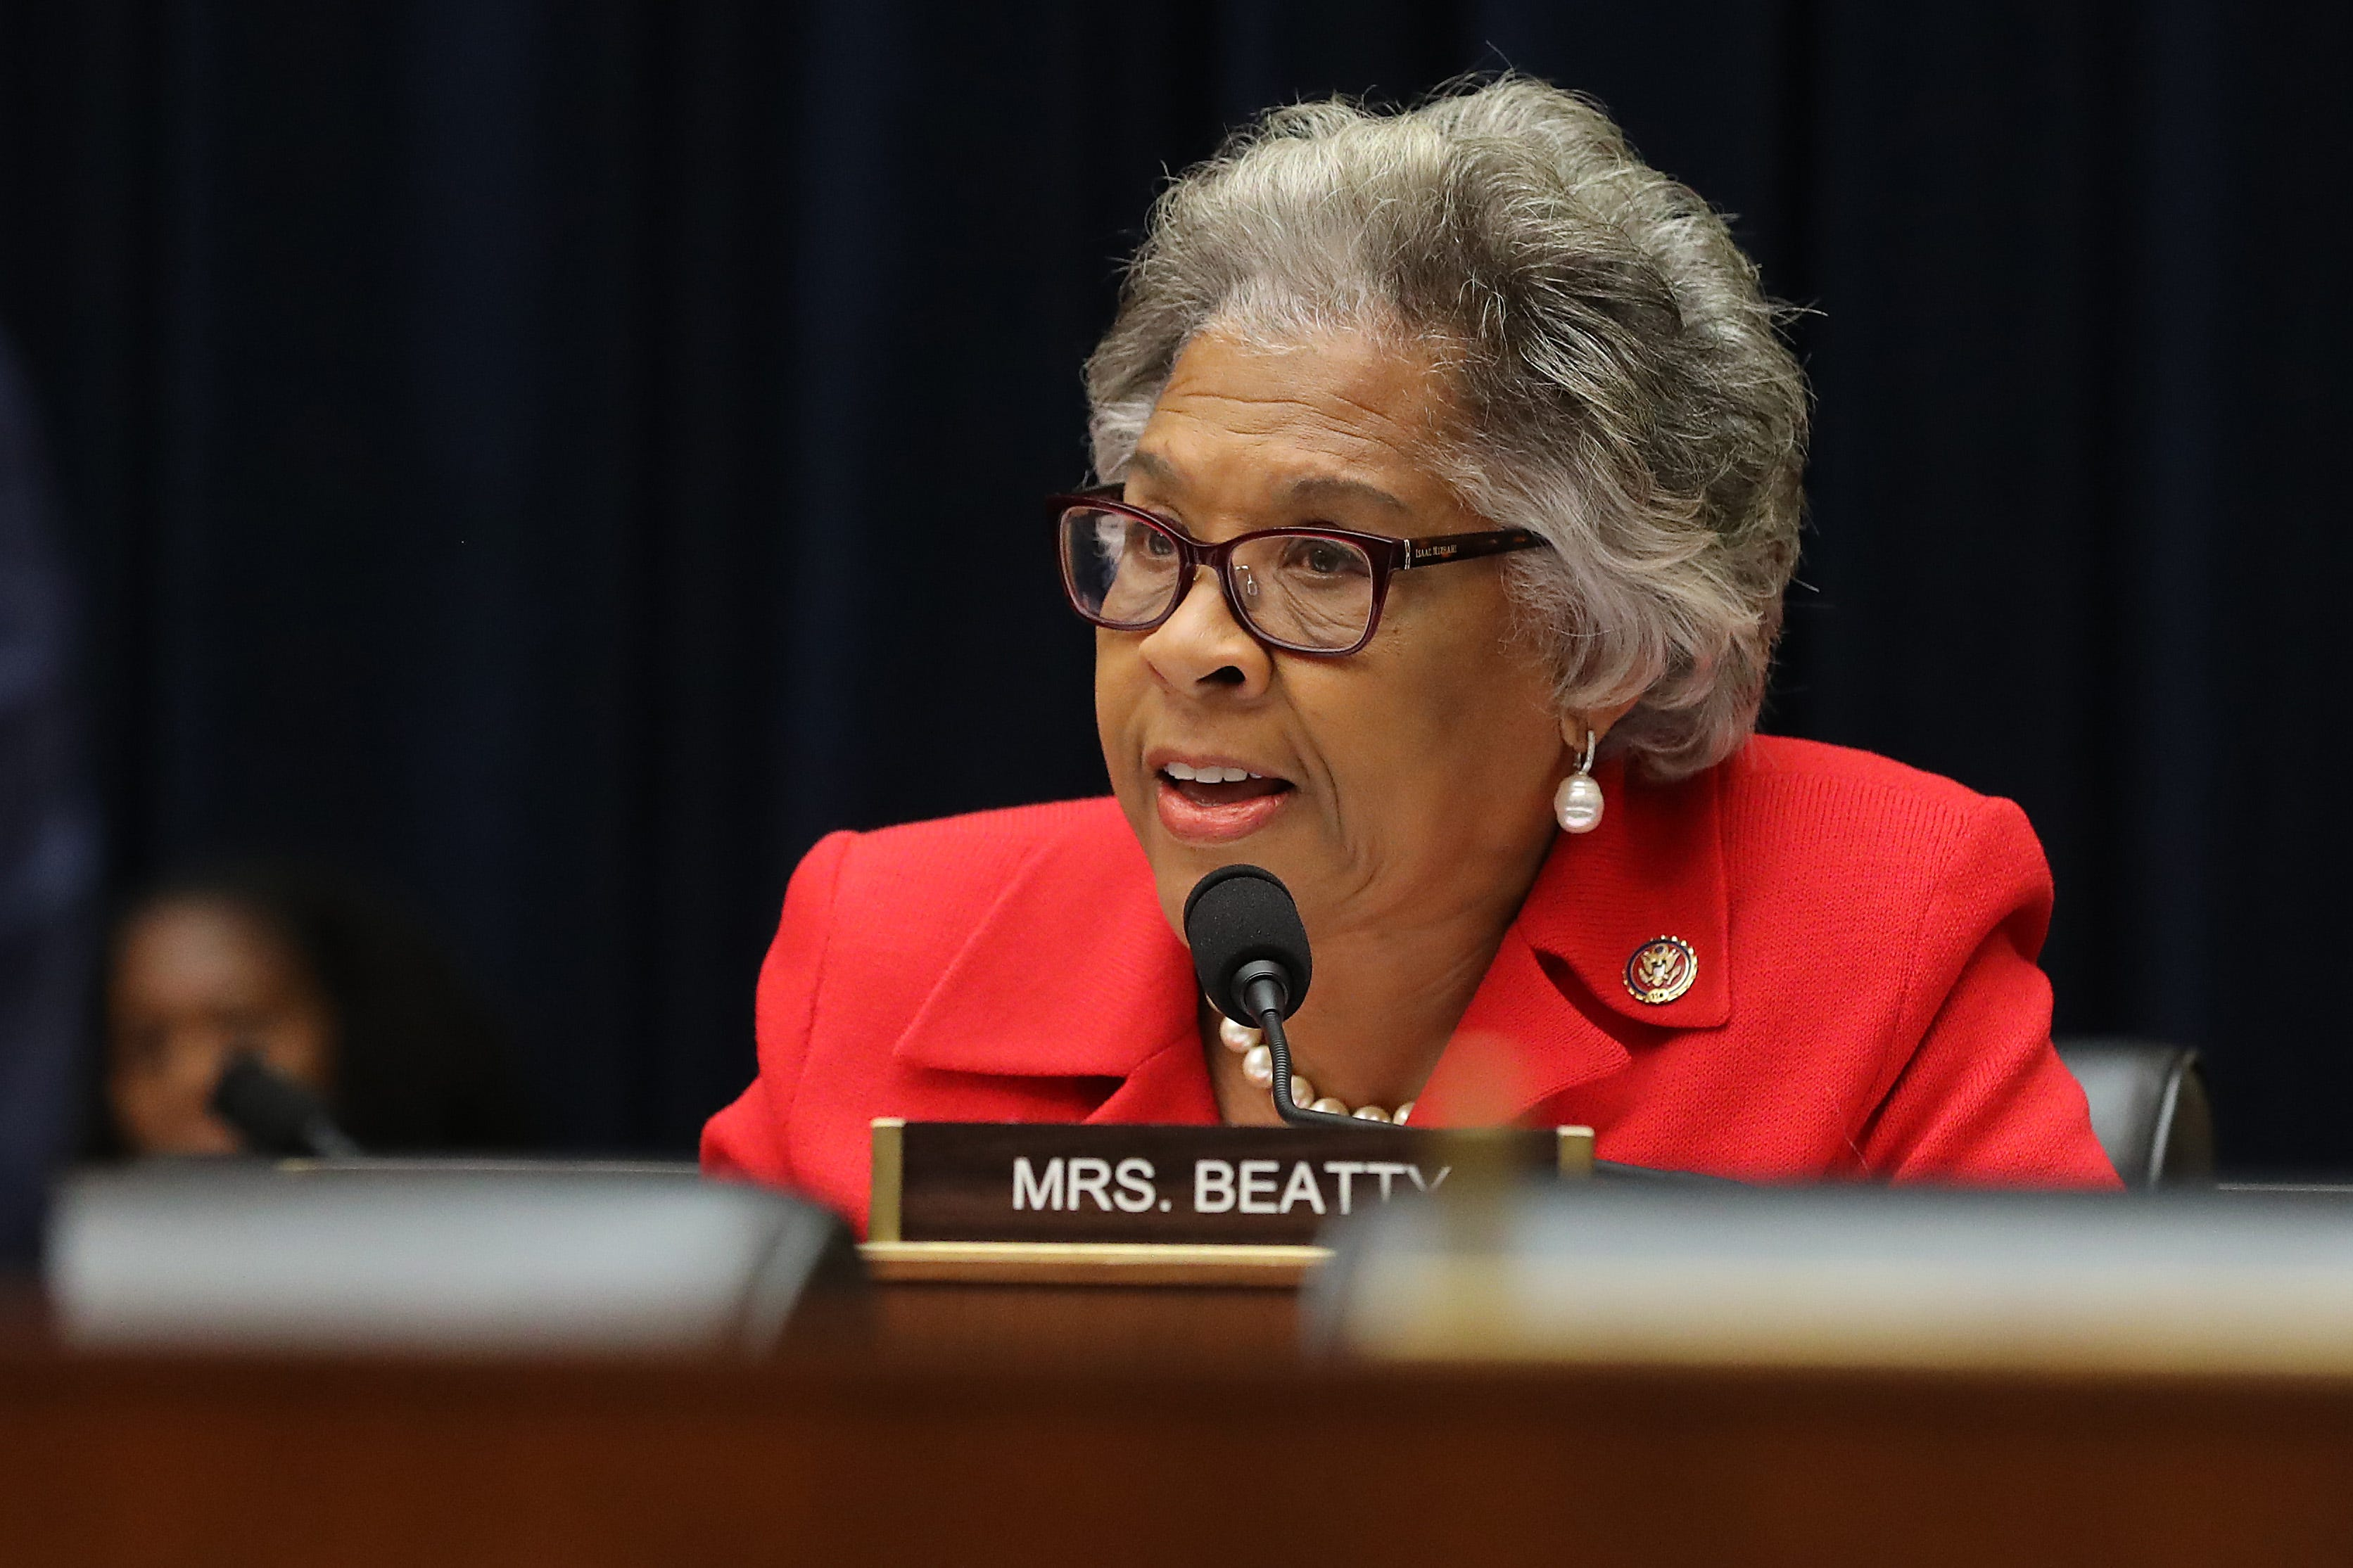 """Rep. Joyce Beatty, D-Ohio, promises to work with the Biden administration and her congressional colleagues """"to defeat the pandemic and ensure better days lie ahead for all of us."""""""